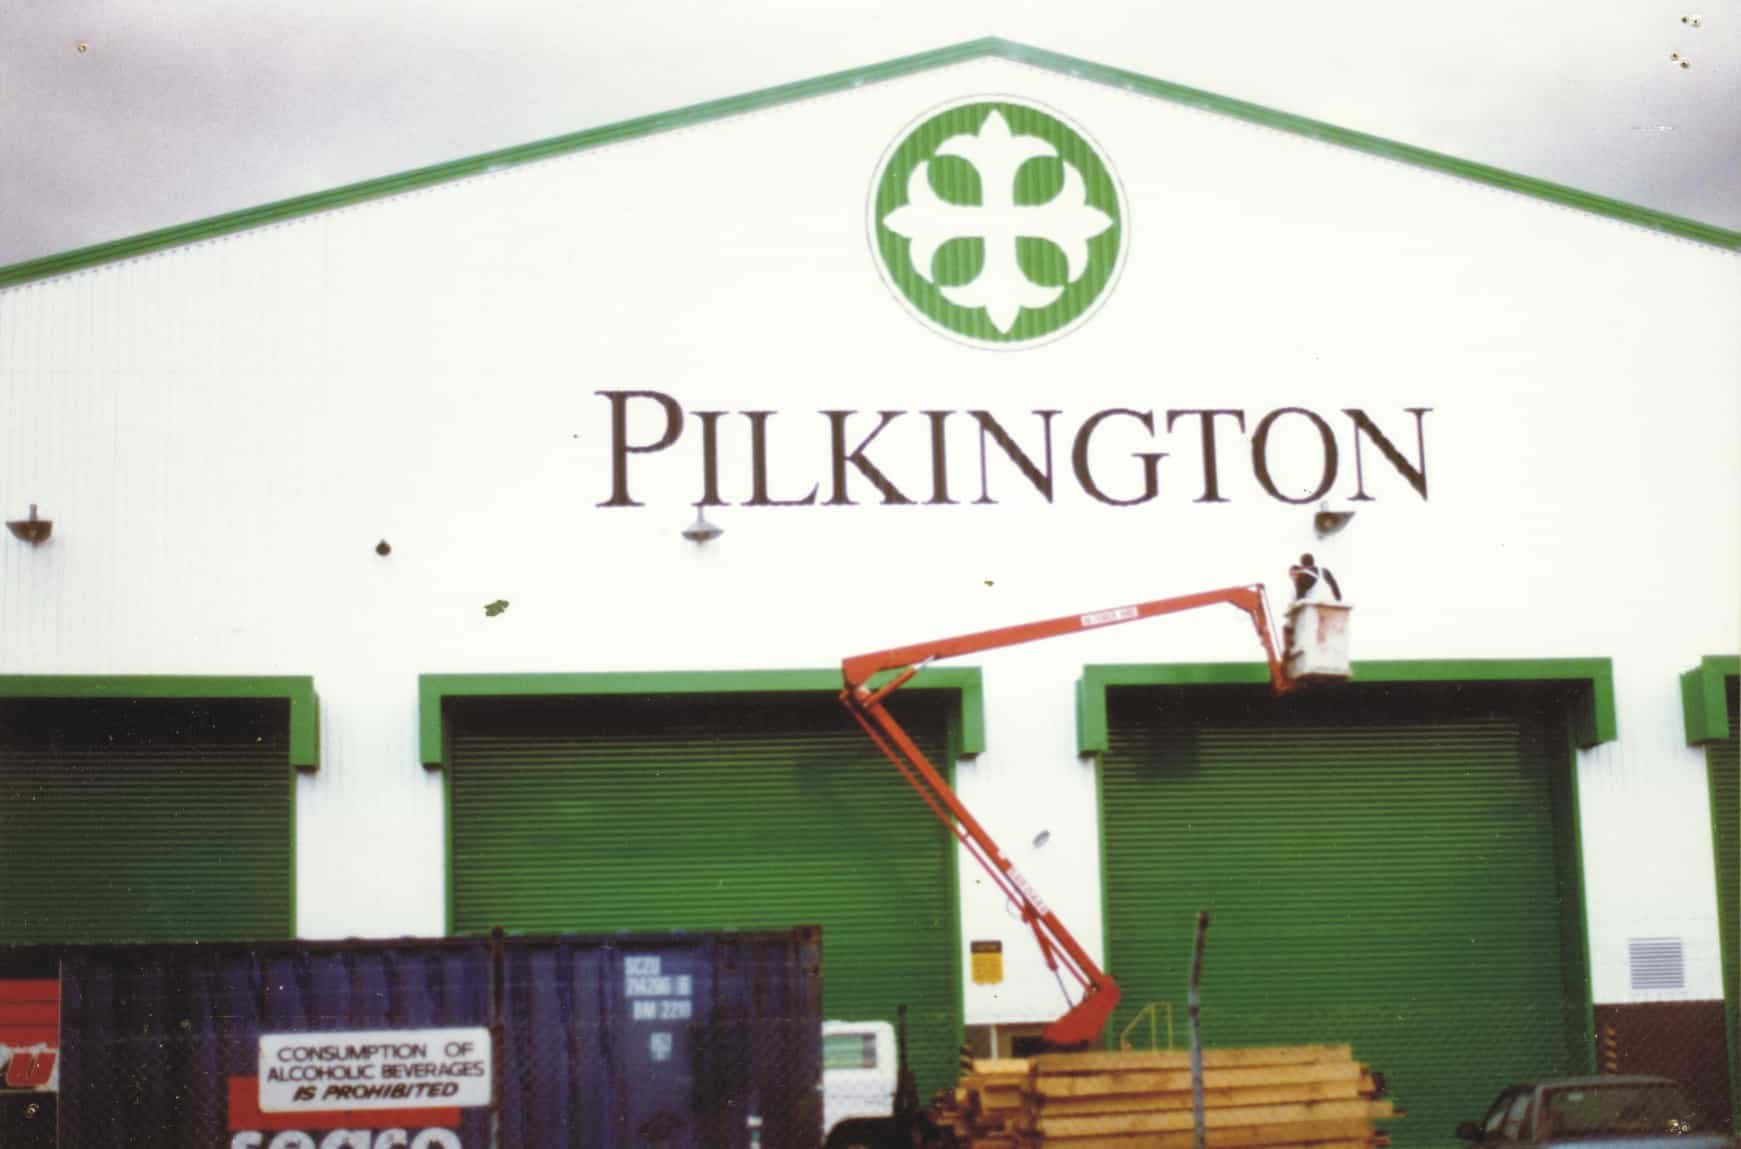 signage melbourne pilkington